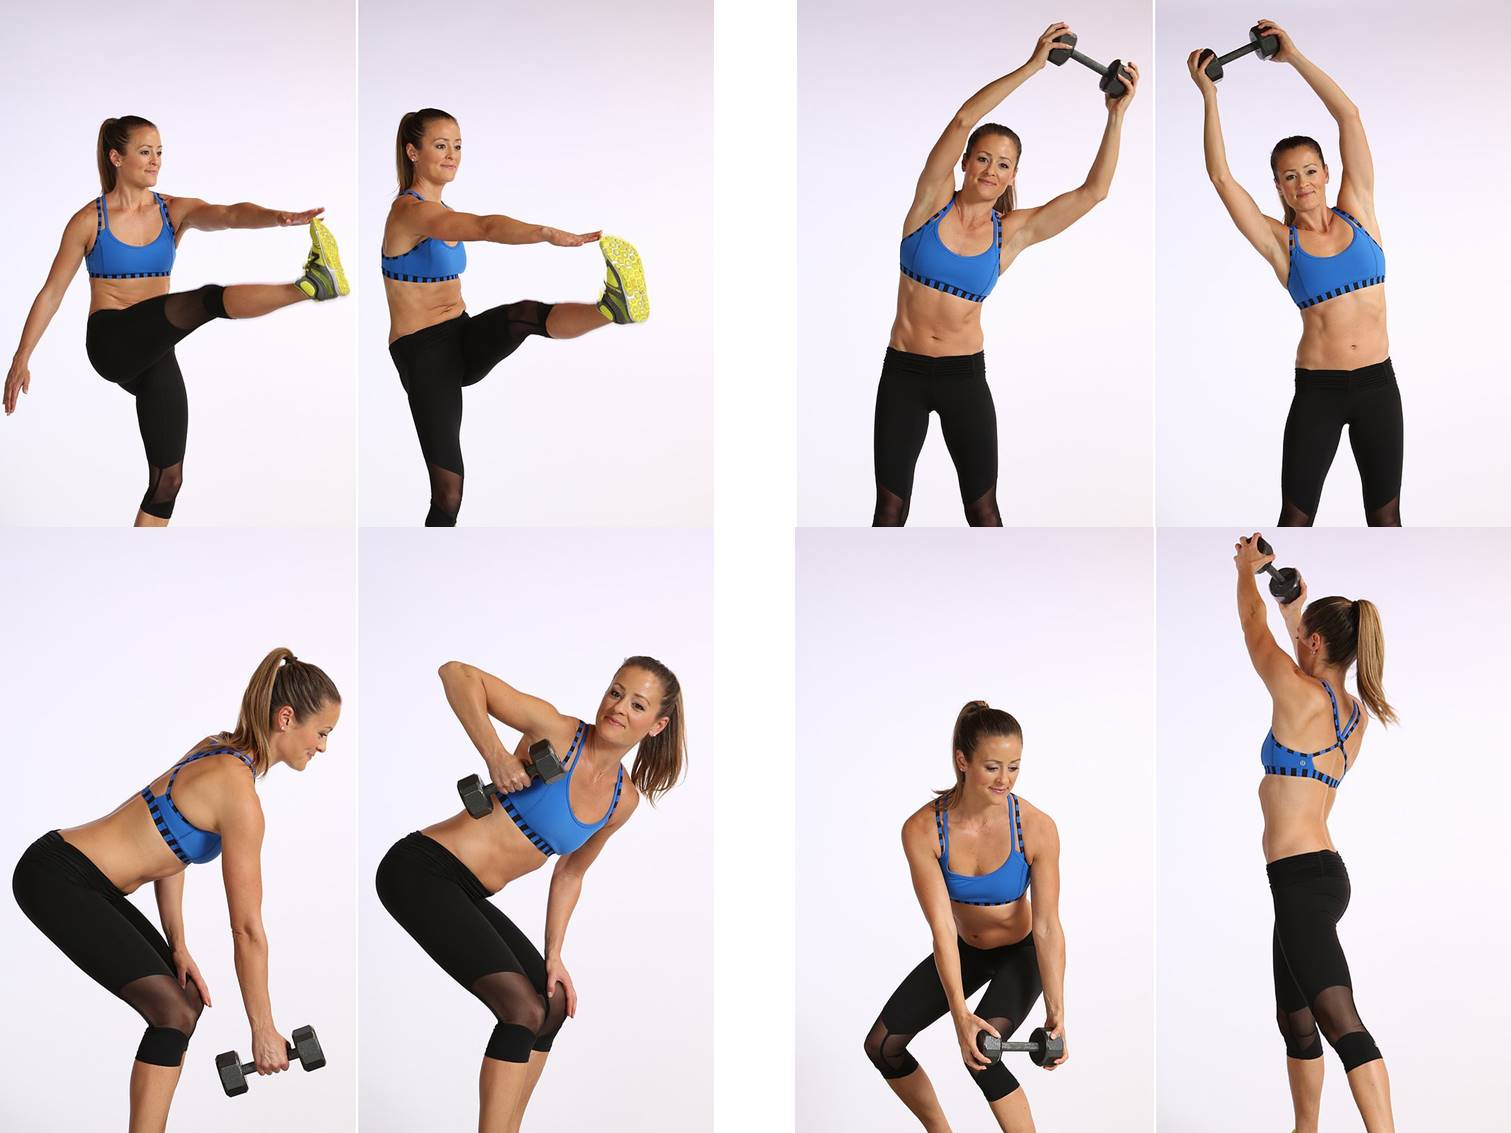 Waist Cinching Workout get rid of your muffin top, effective waist slimming exercises, flat tummy, diet